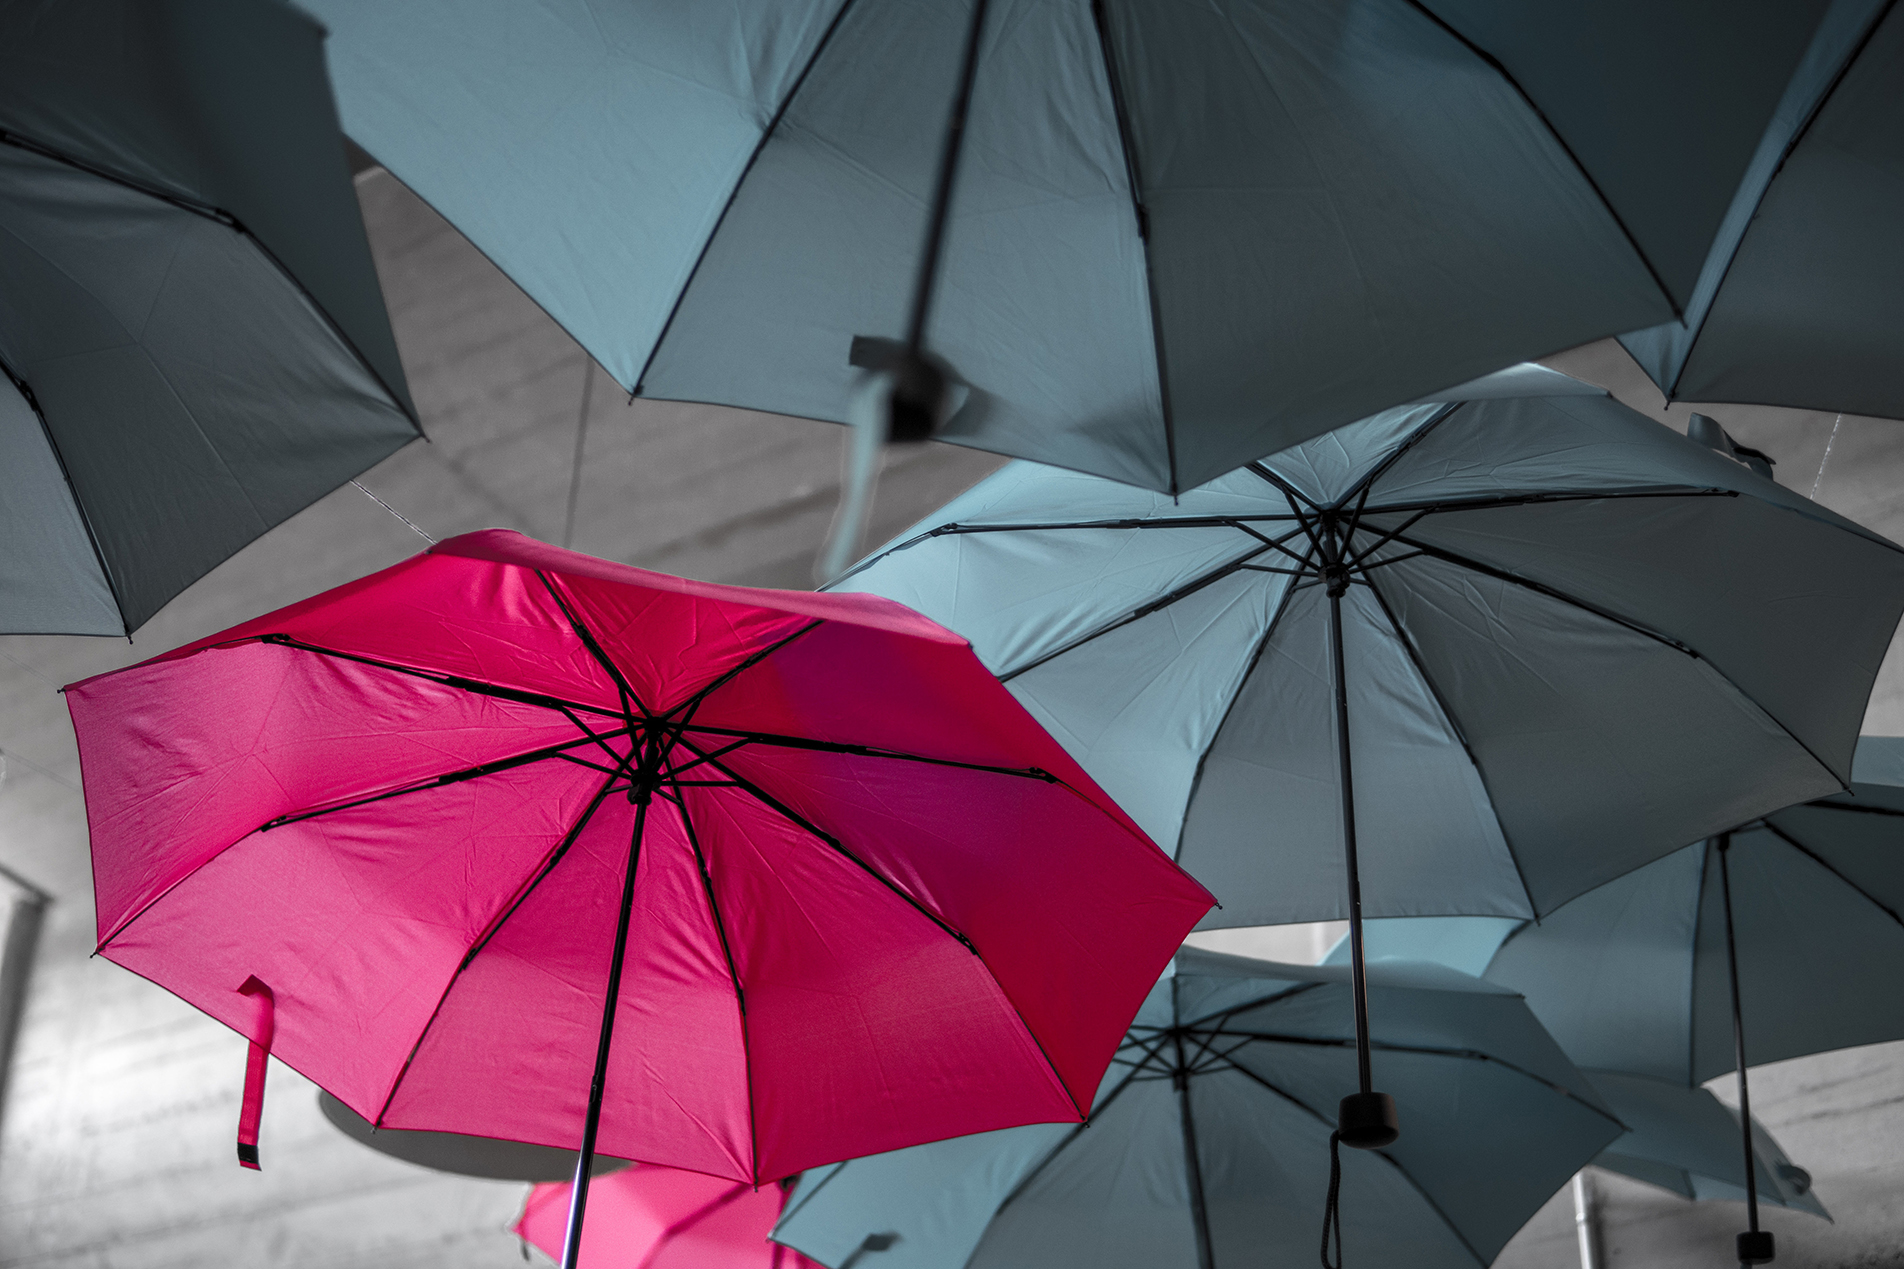 engaging your audience - one red umbrella in the midst of all grey umbrellas - stand out!